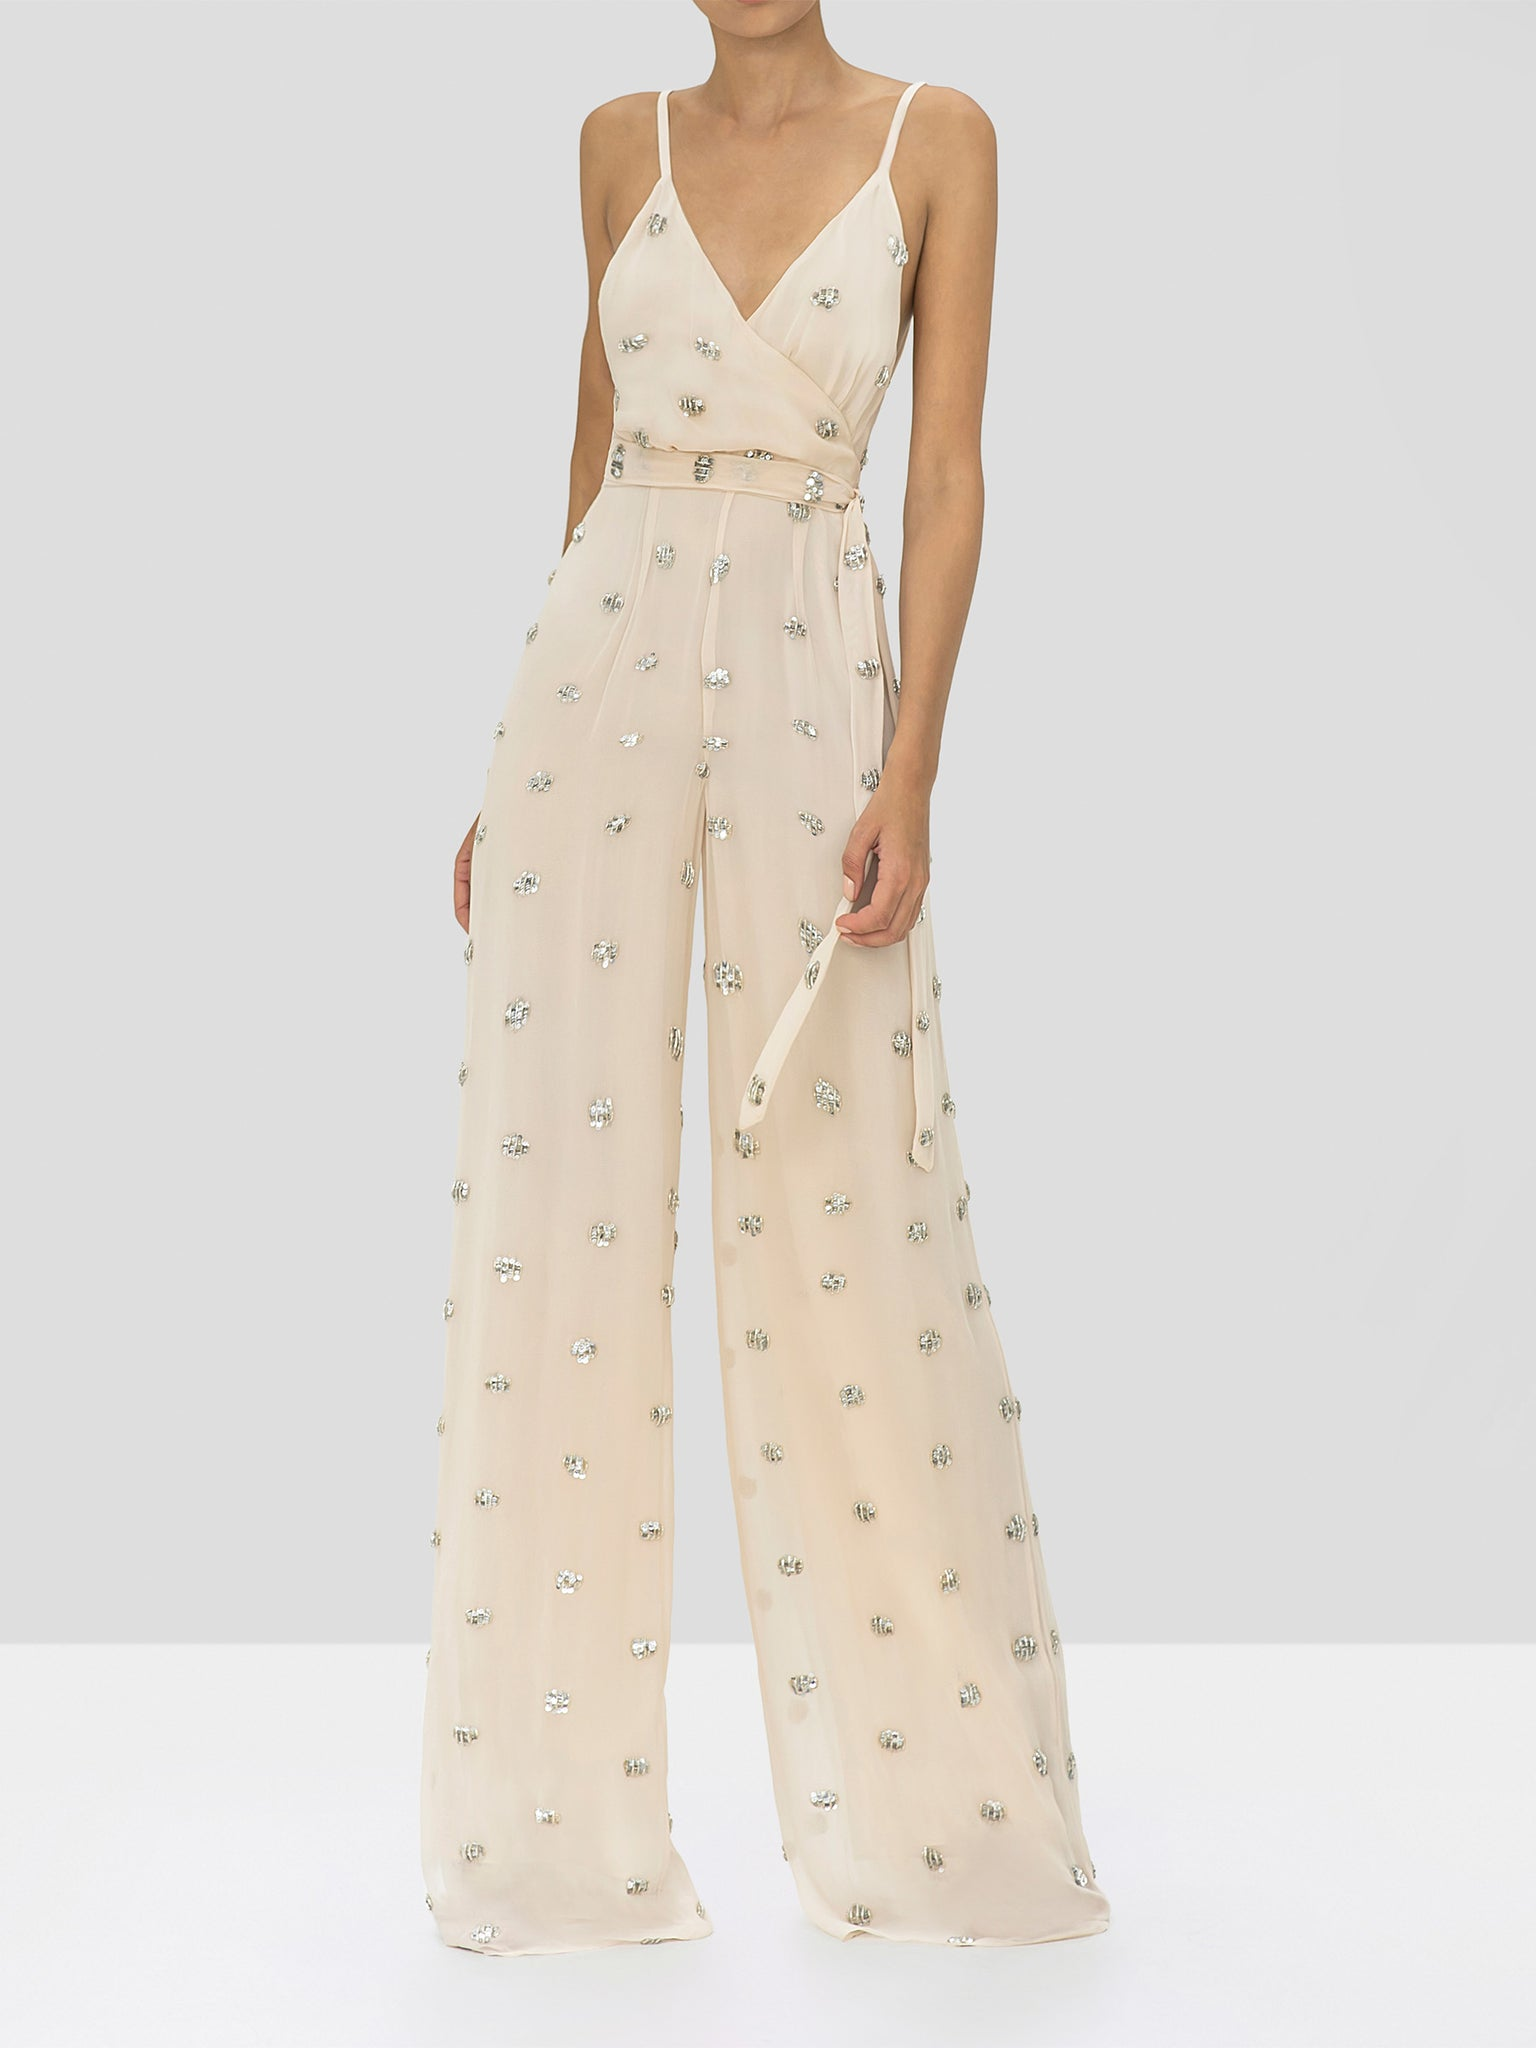 Alexis Cosmina Jumpsuit in Embellished Blush from the Holiday 2019 Ready To Wear Collection